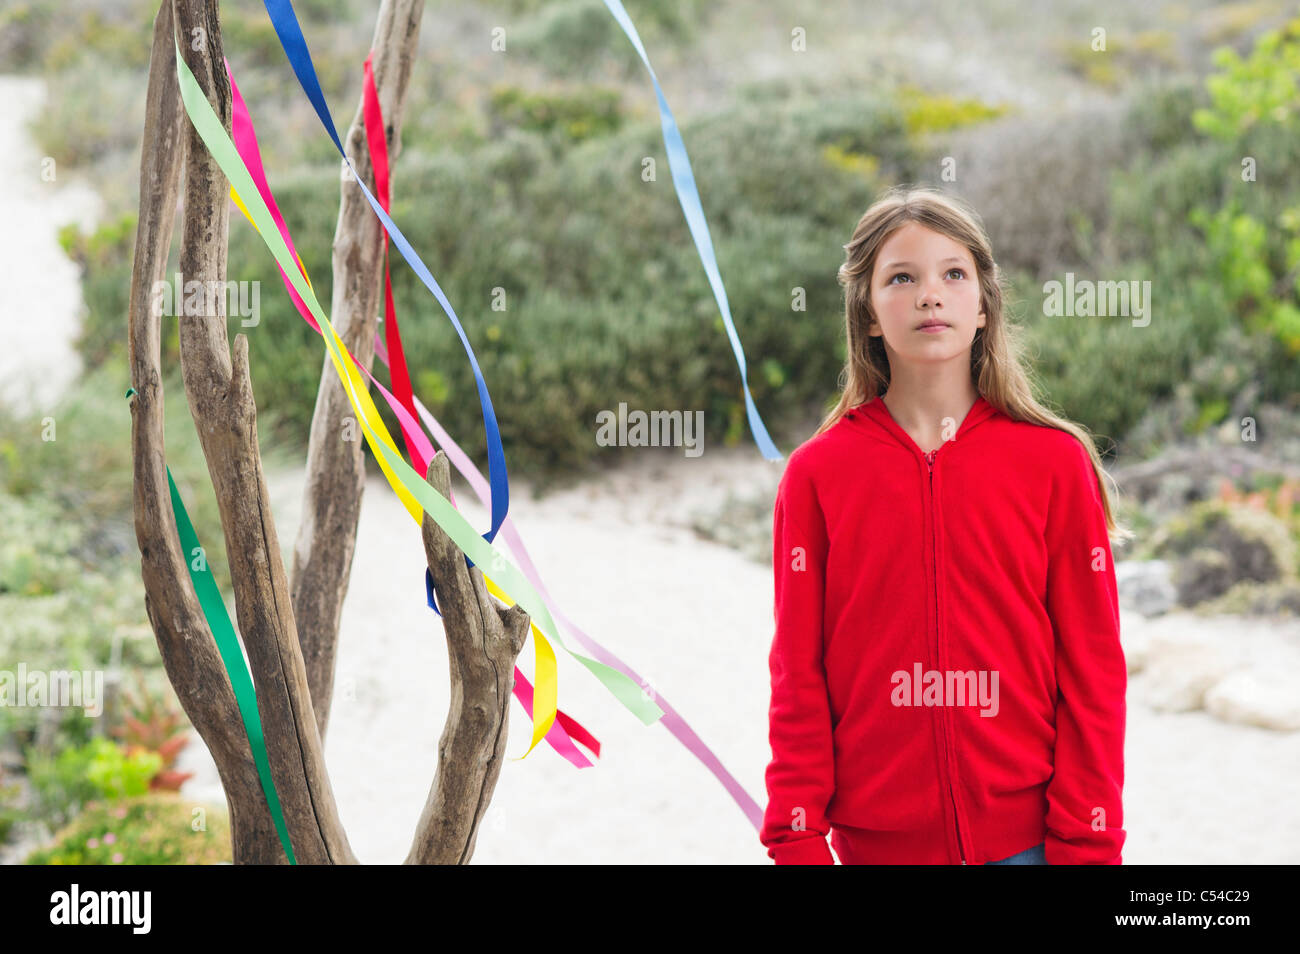 Girl standing near a decorated tree - Stock Image